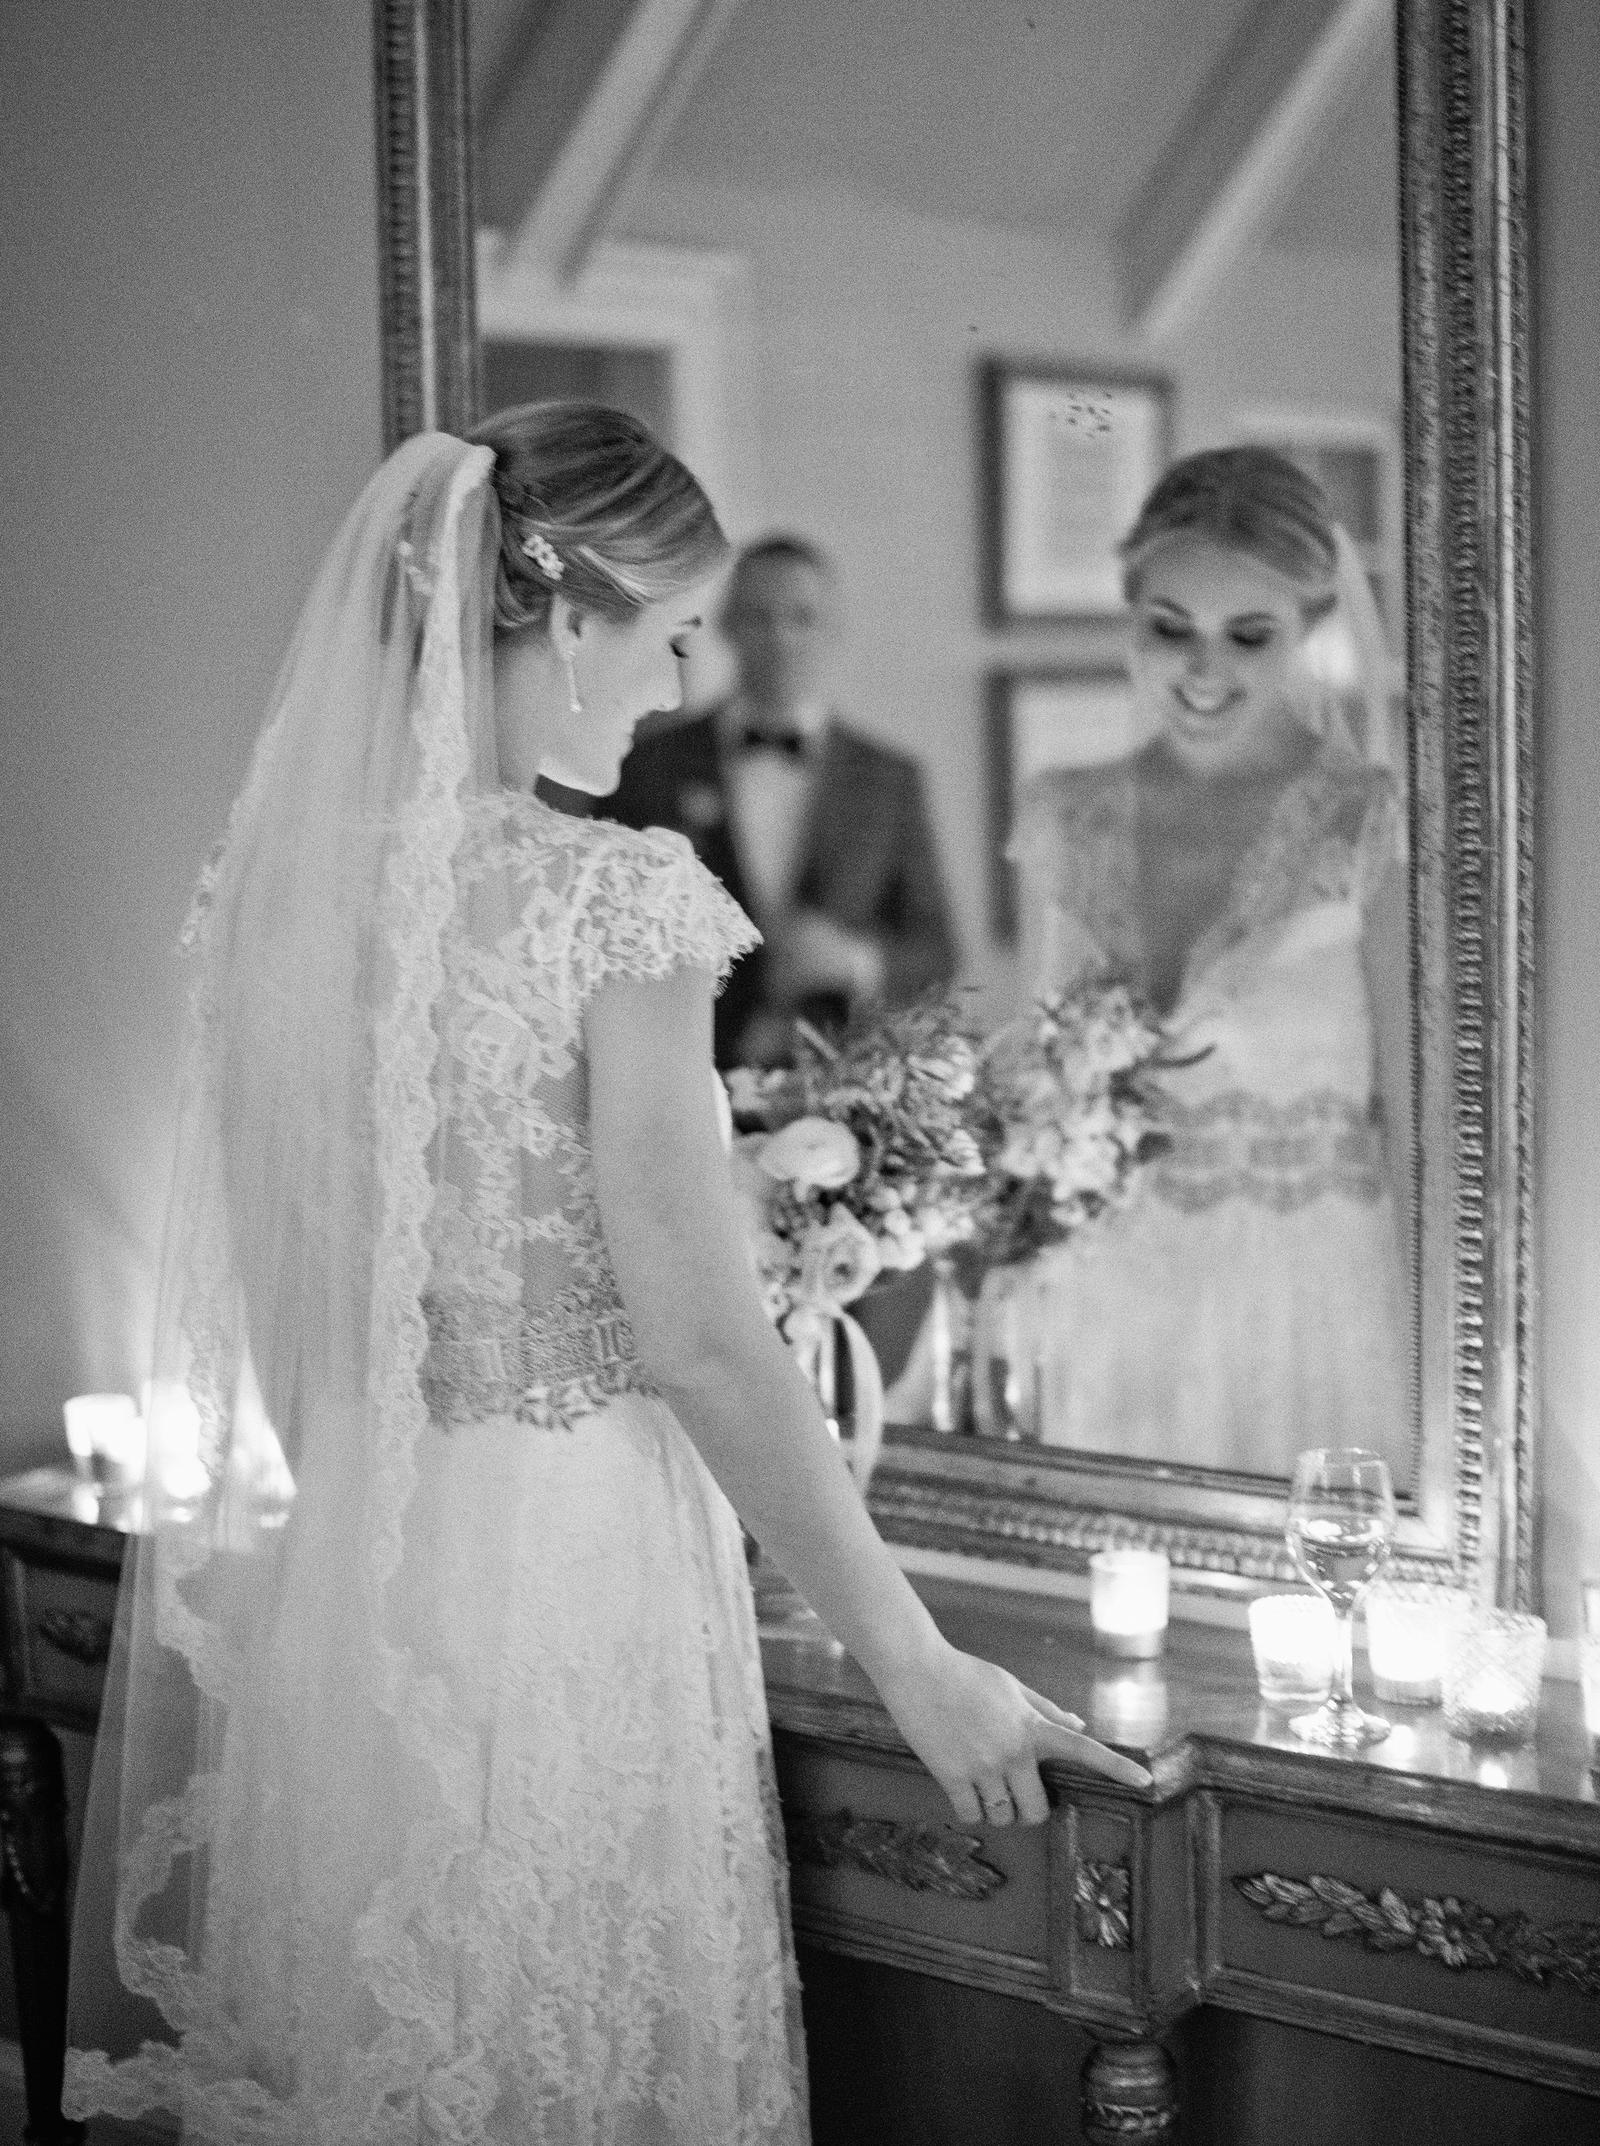 Wedding Photography | A bride stands in front of a mirror, her groom's reflection can be seen.